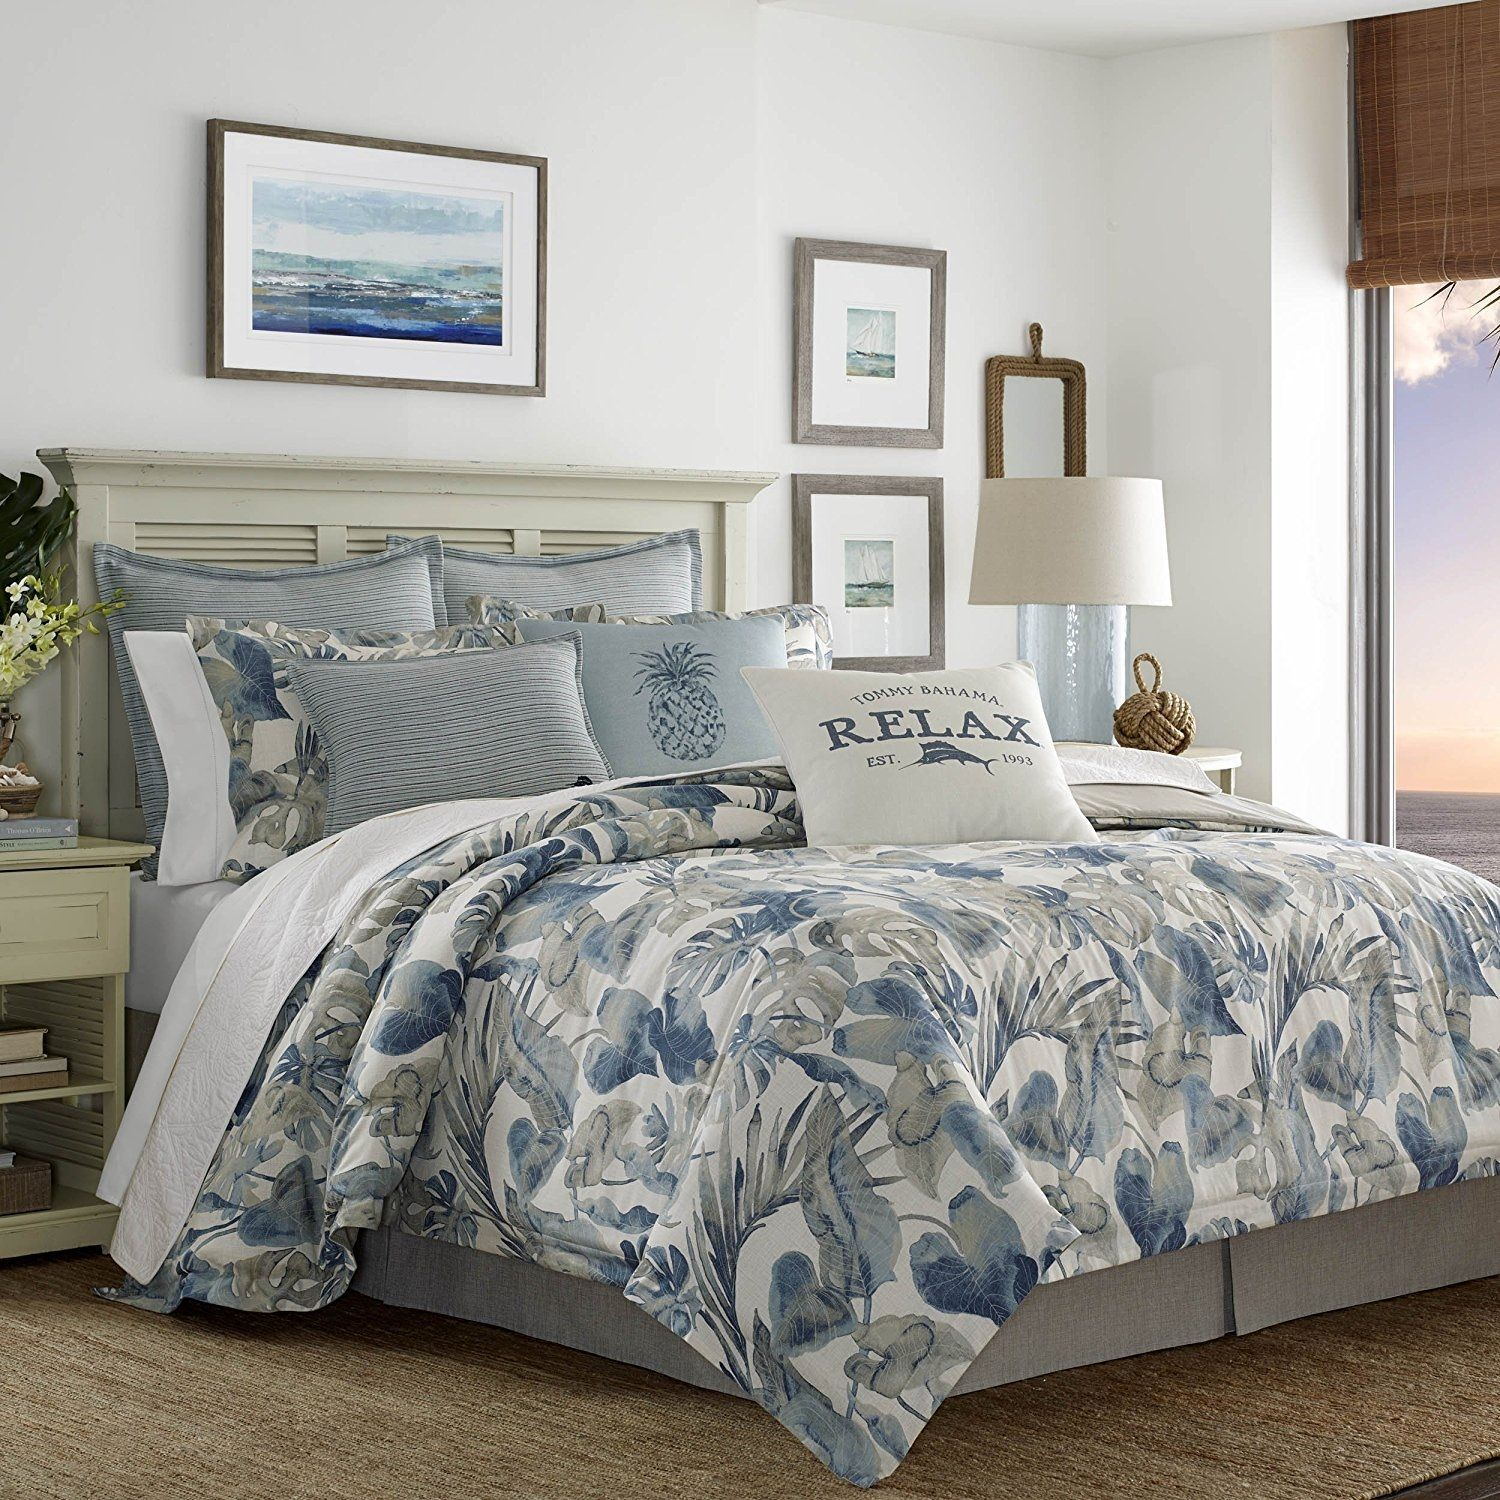 100 Tropical Bedding Sets And Tropical Comforters For 2020 Beachfront Decor Tropical Bedding Sets Comforter Sets Tropical Bedding